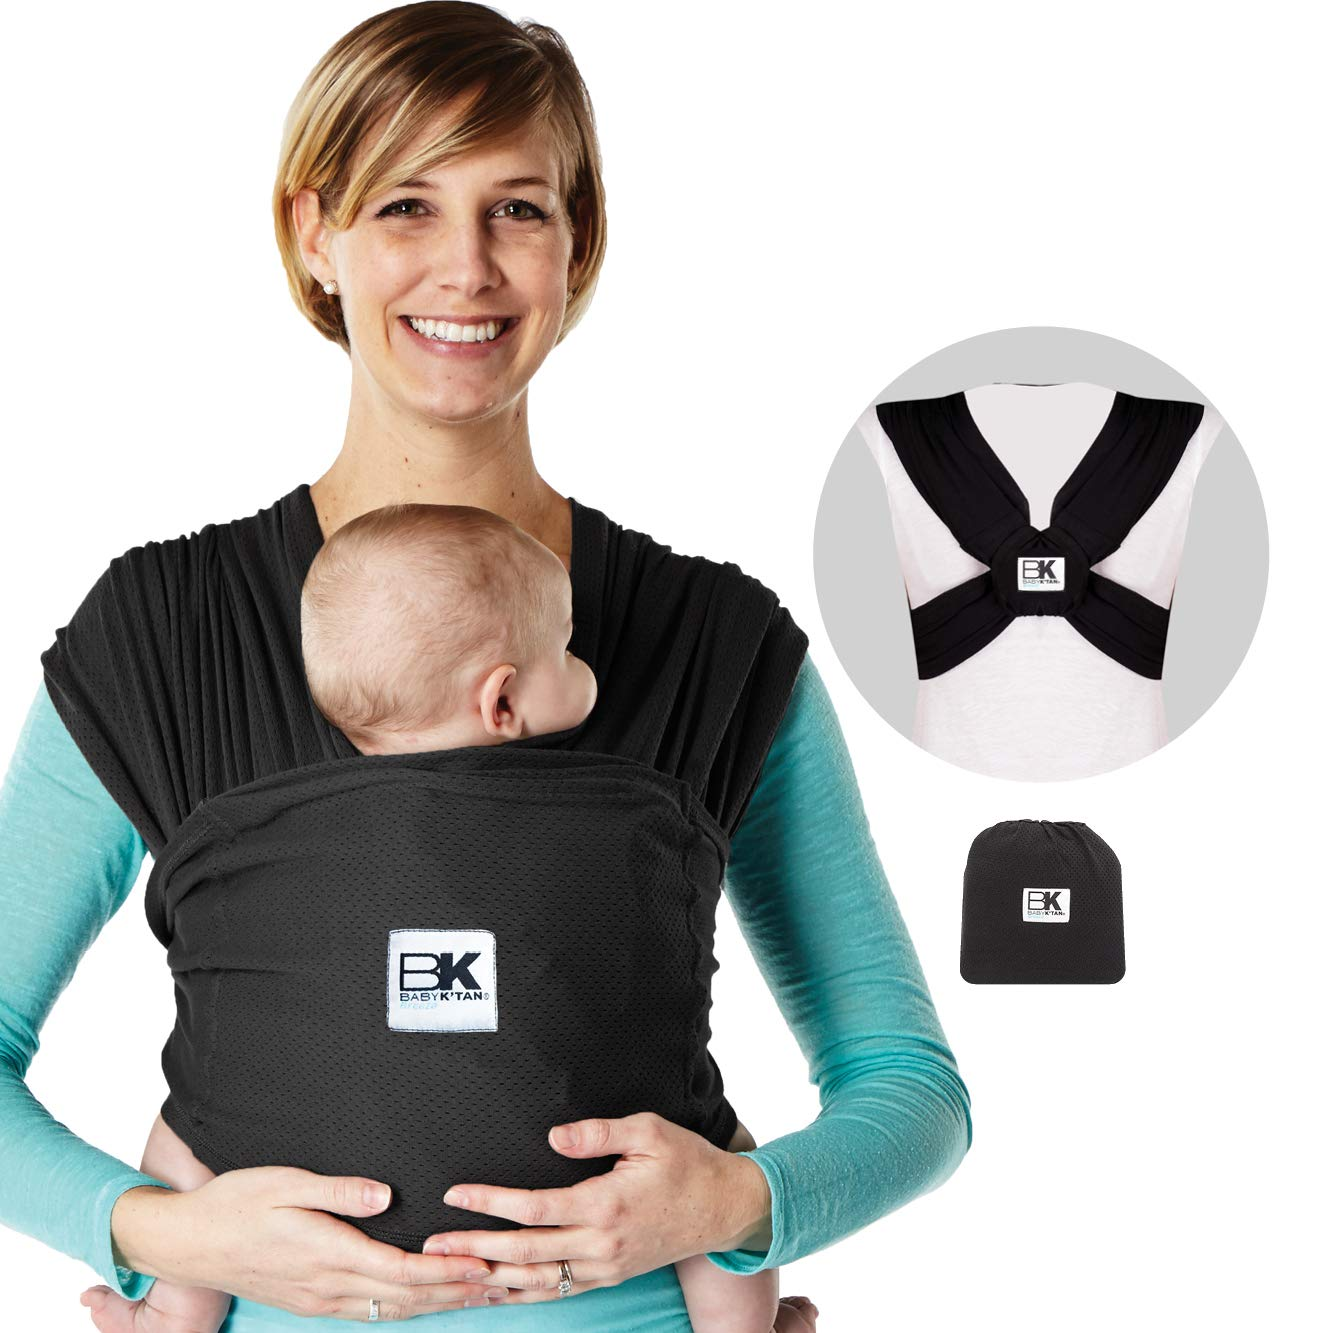 Baby Ktan Print Baby Wrap Carrier Newborn up to 35 lbs Infant and Child Sling-Charcoal Stripe XXS Best for Babywearing. W dress up to 0